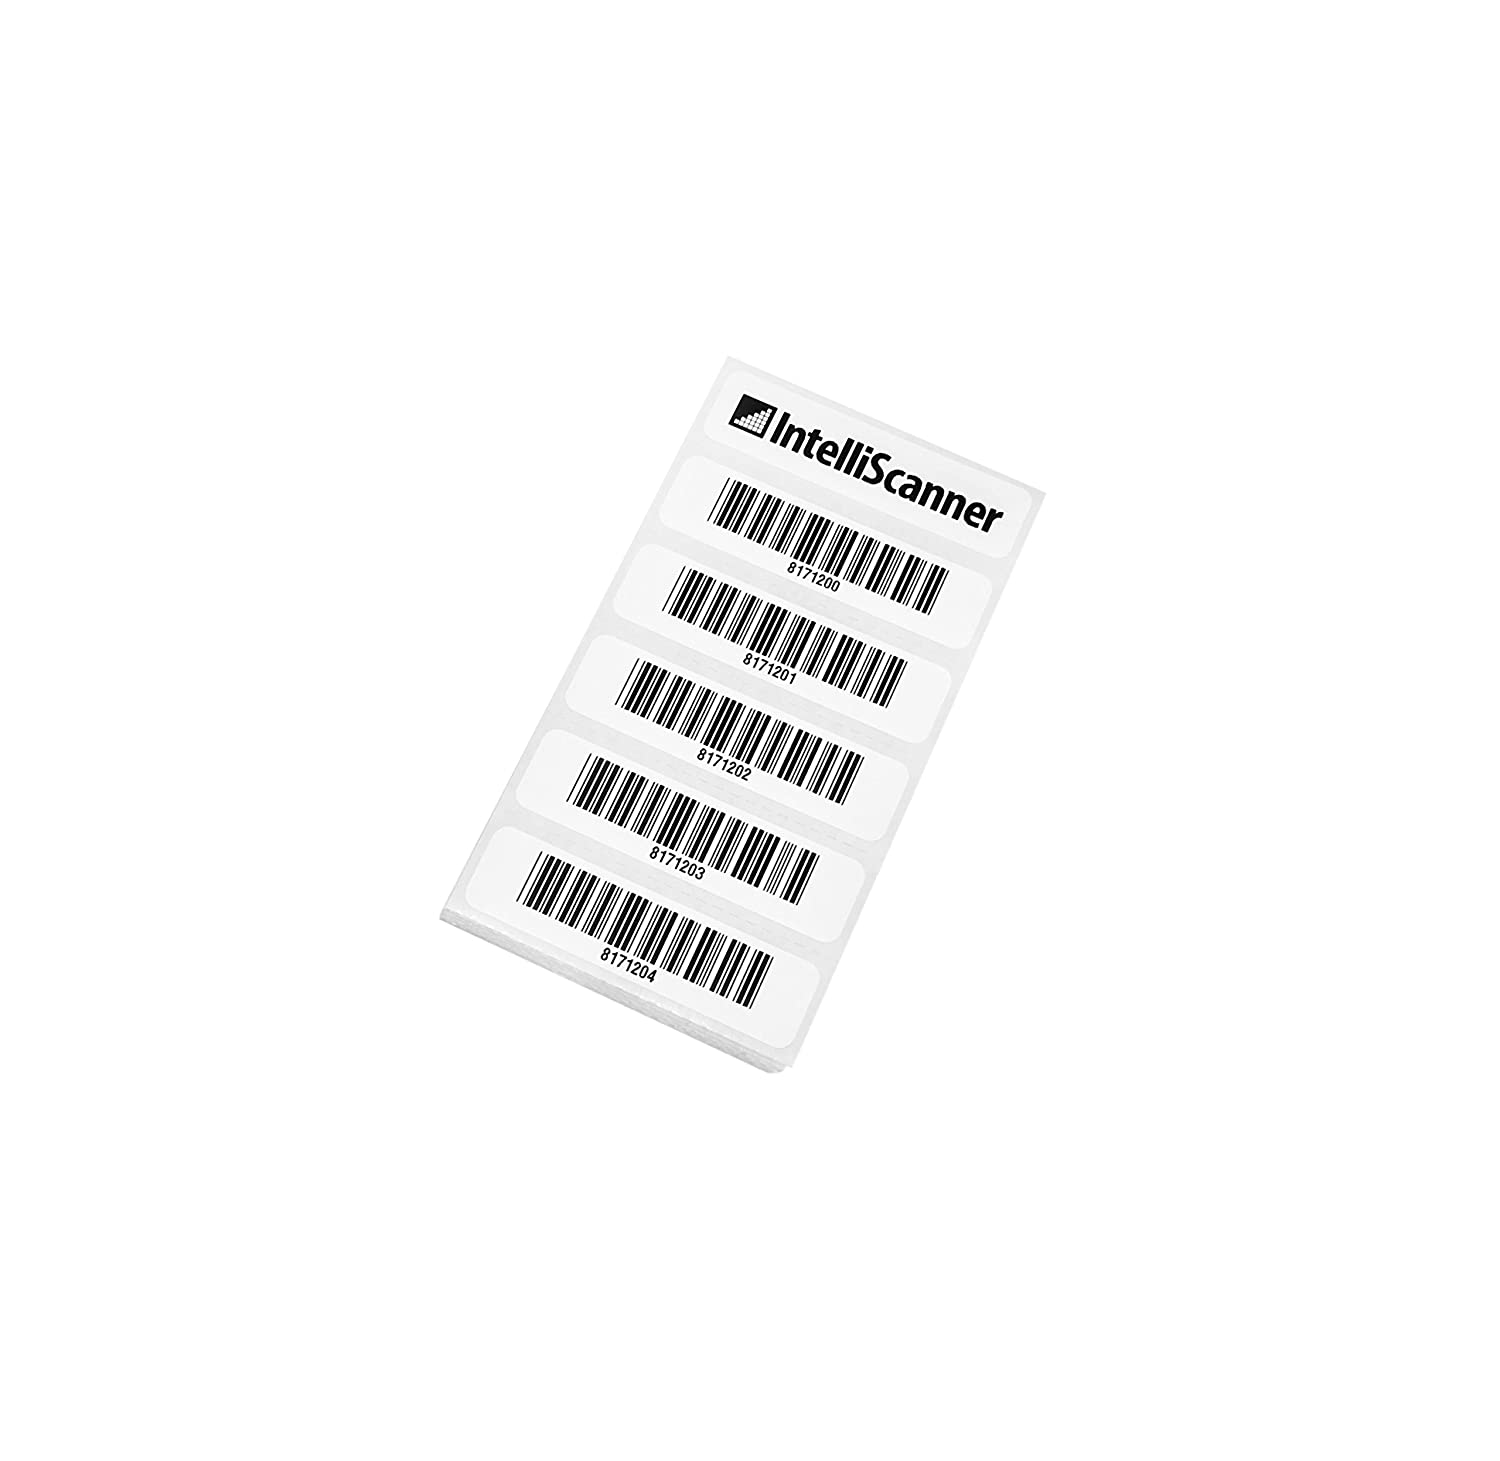 Elegant Photos Of Business Cards with Barcode - Business Cards and ...